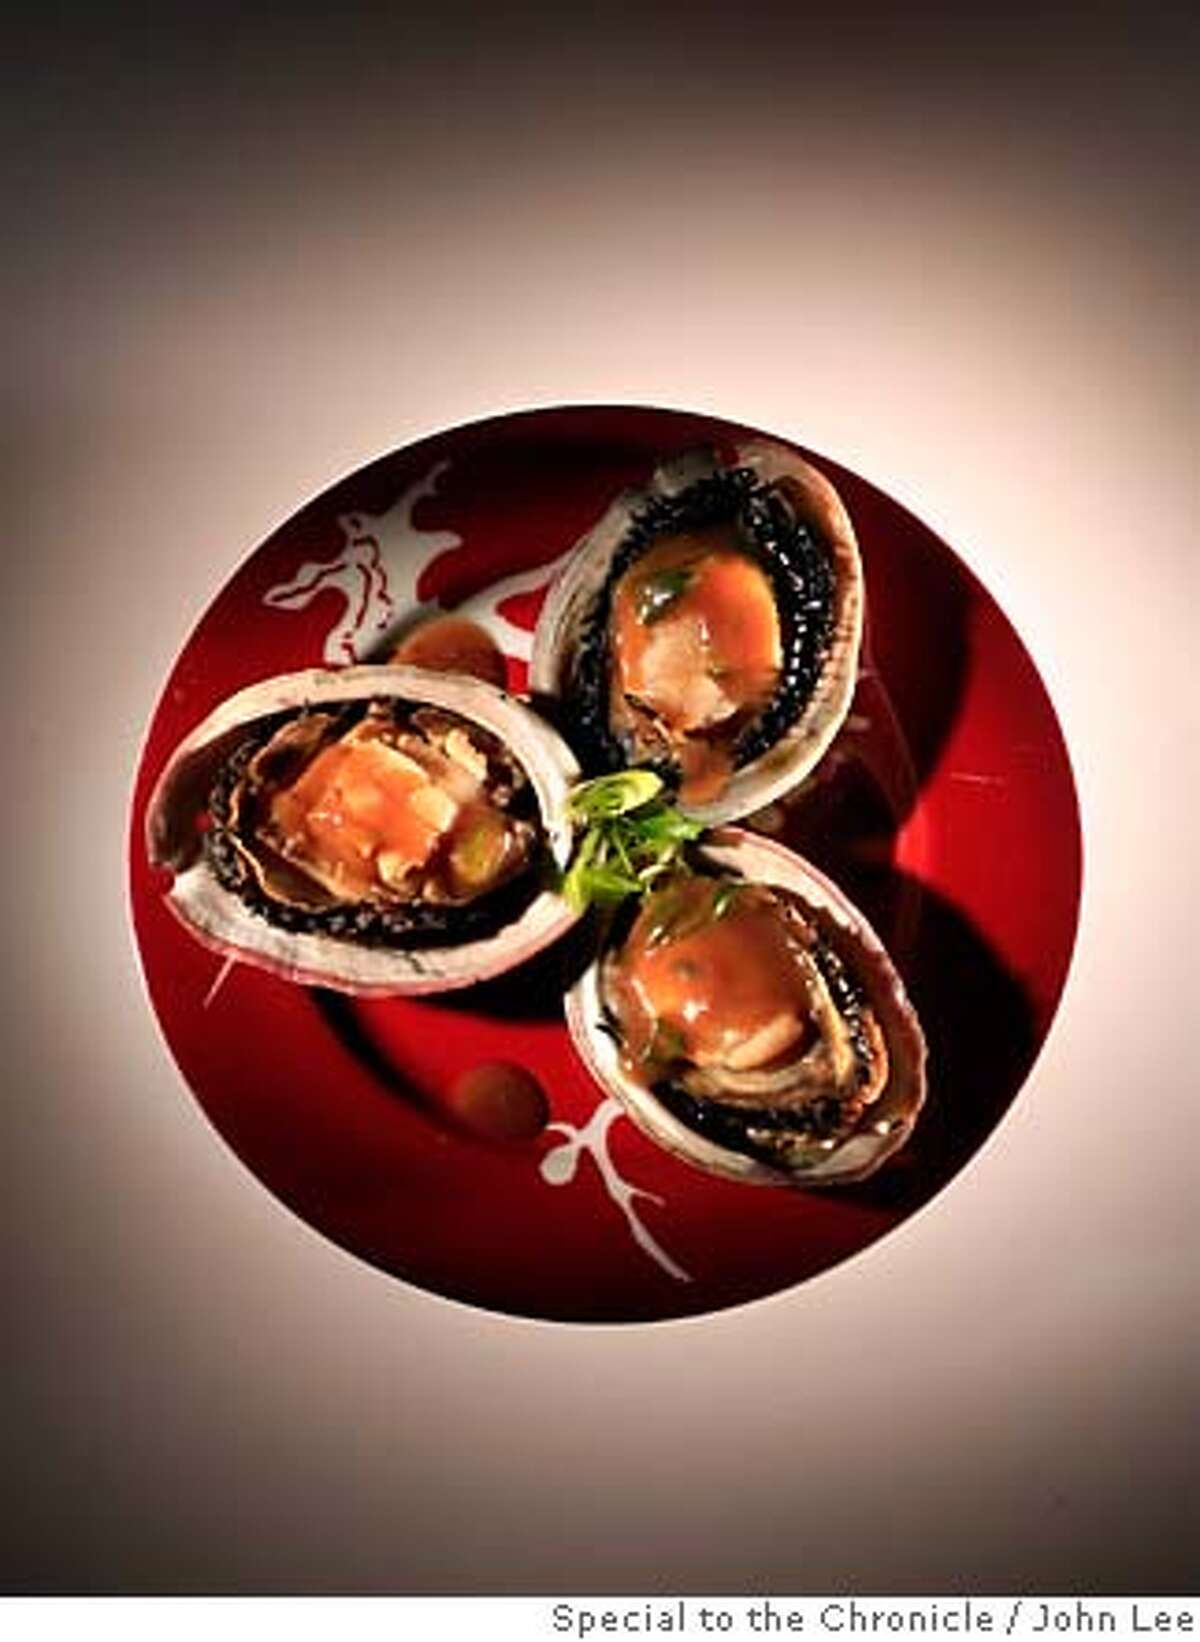 ABALONE28KOI_JOHNLEE.JPG Koi Palace abalone recipe. By JOHN LEE/SPECIAL TO THE CHRONICLE